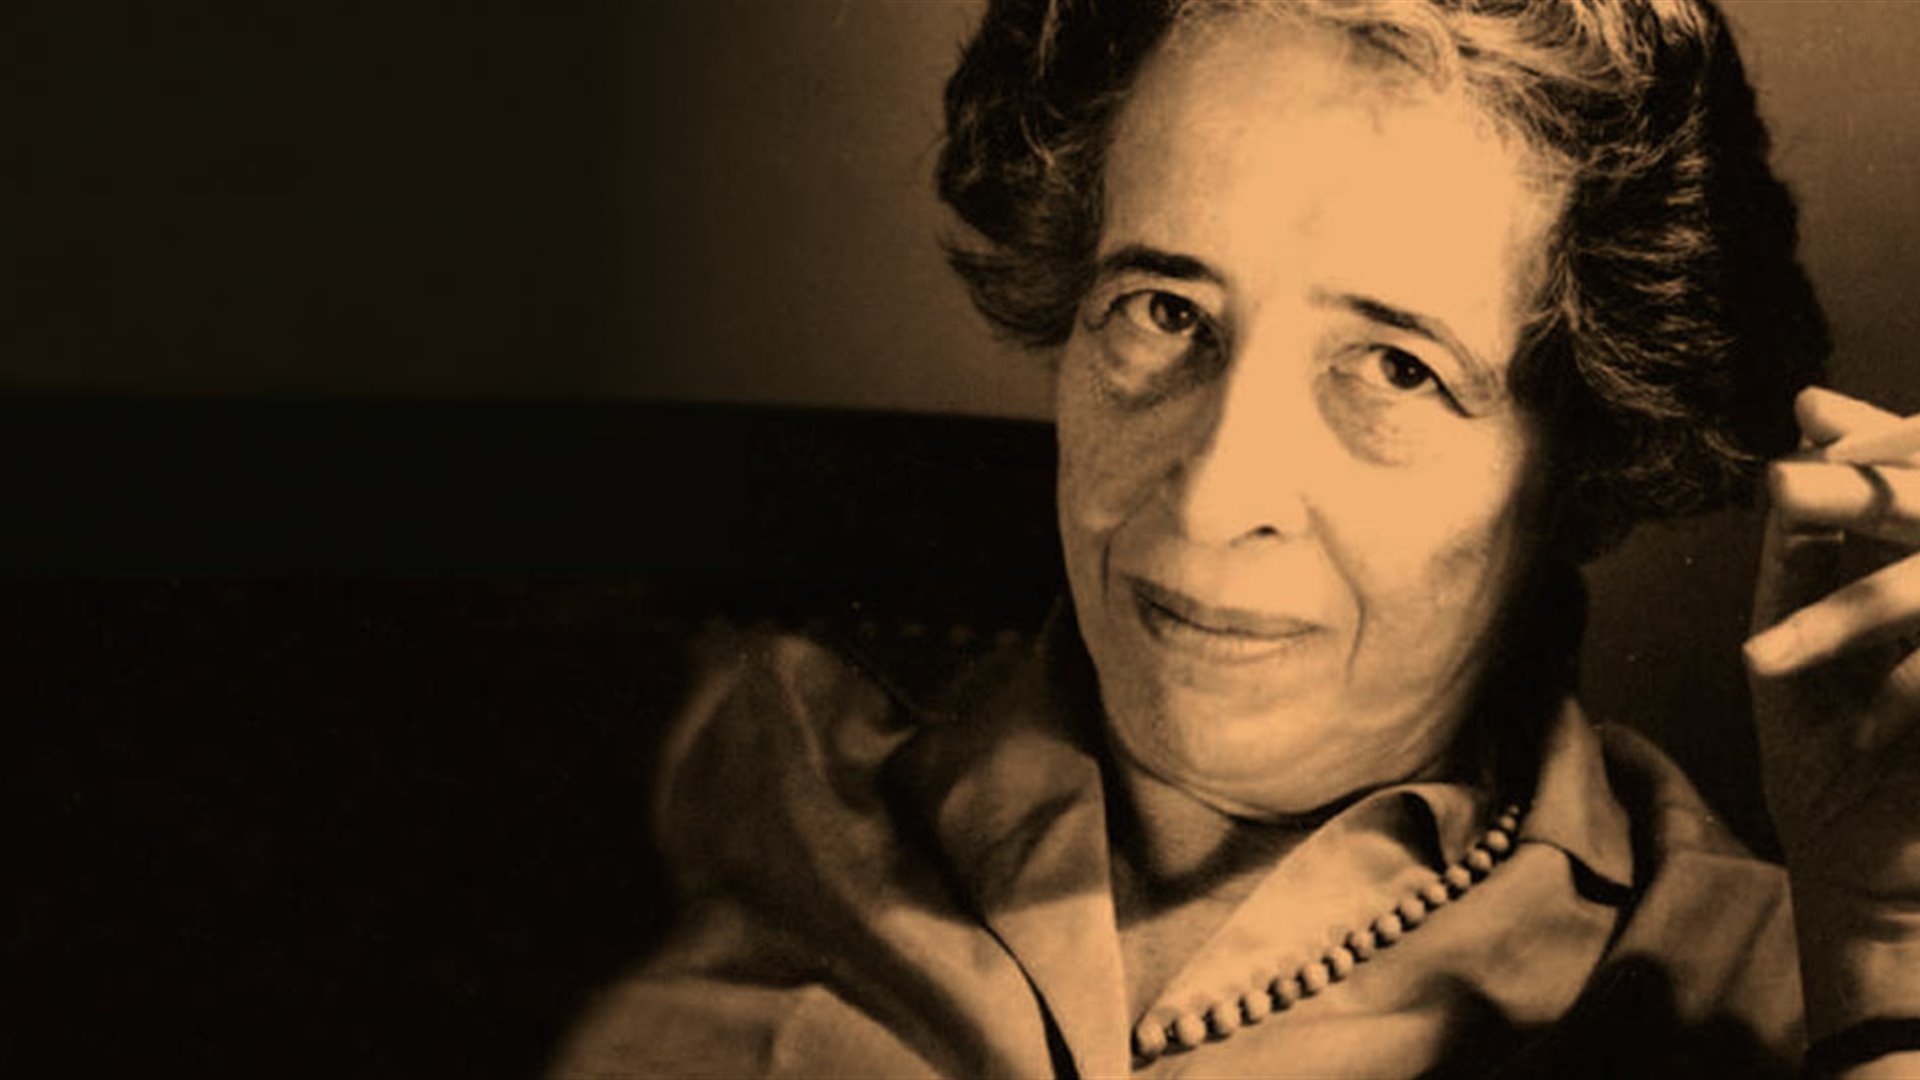 Hannah Arendt: The first one hundred years